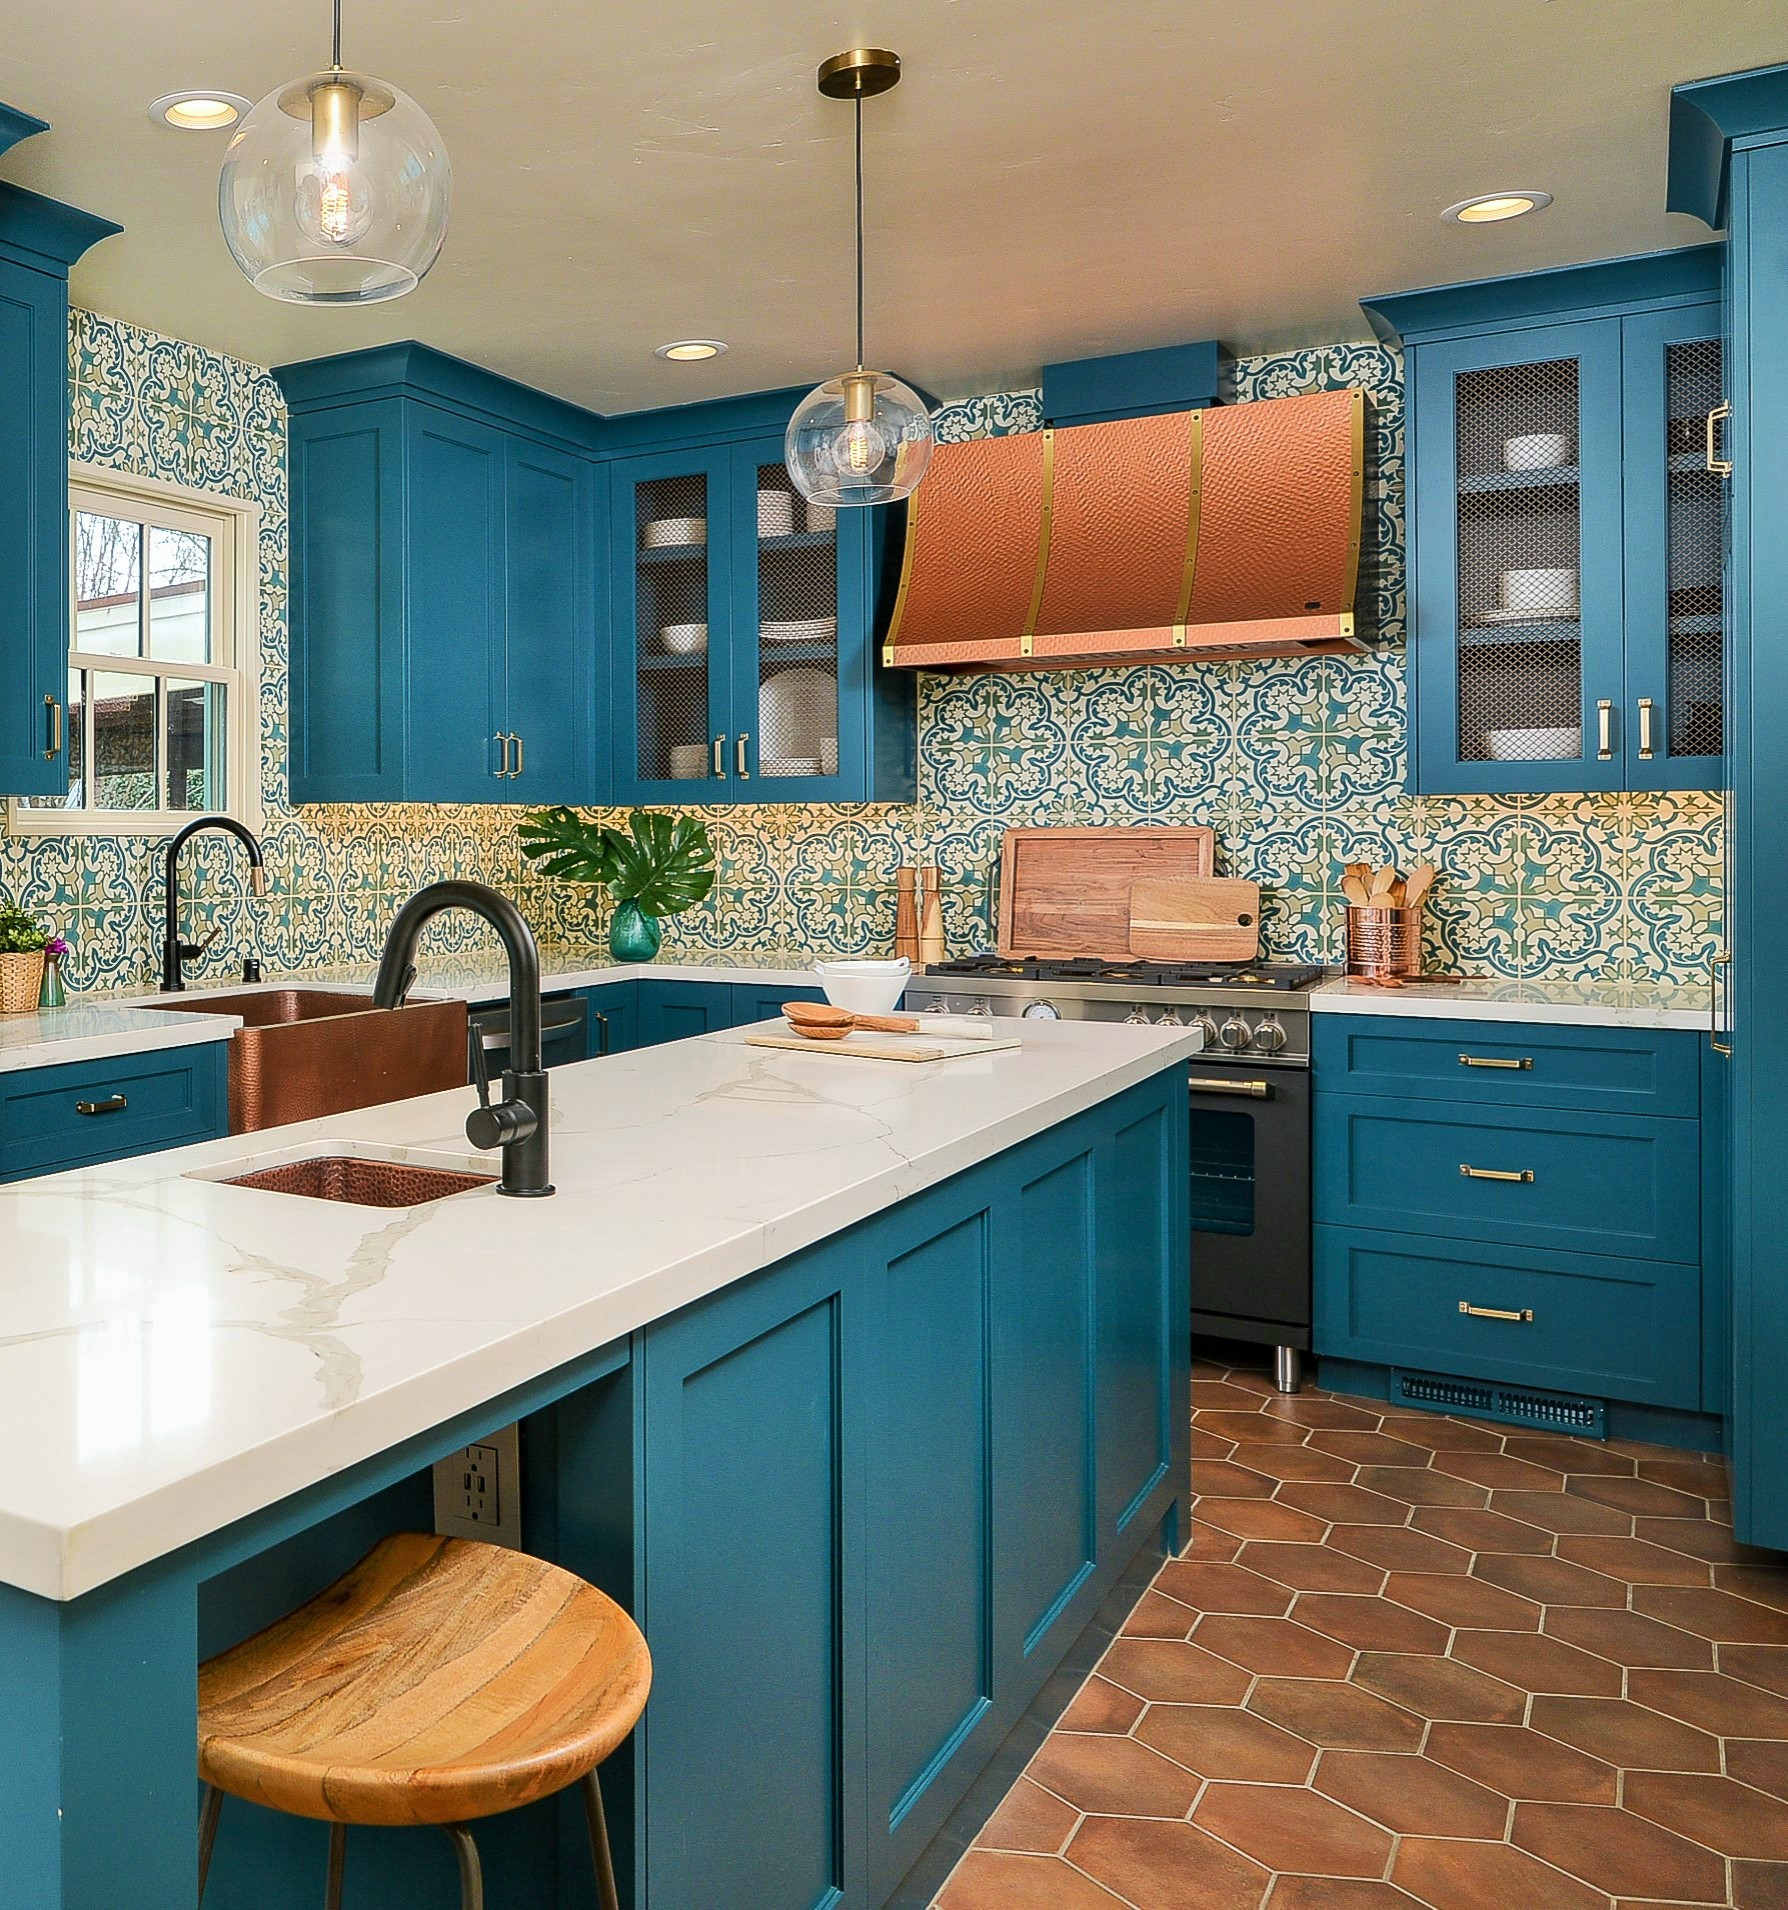 75 Beautiful Kitchen With Turquoise Cabinets Pictures Ideas October 2020 Houzz